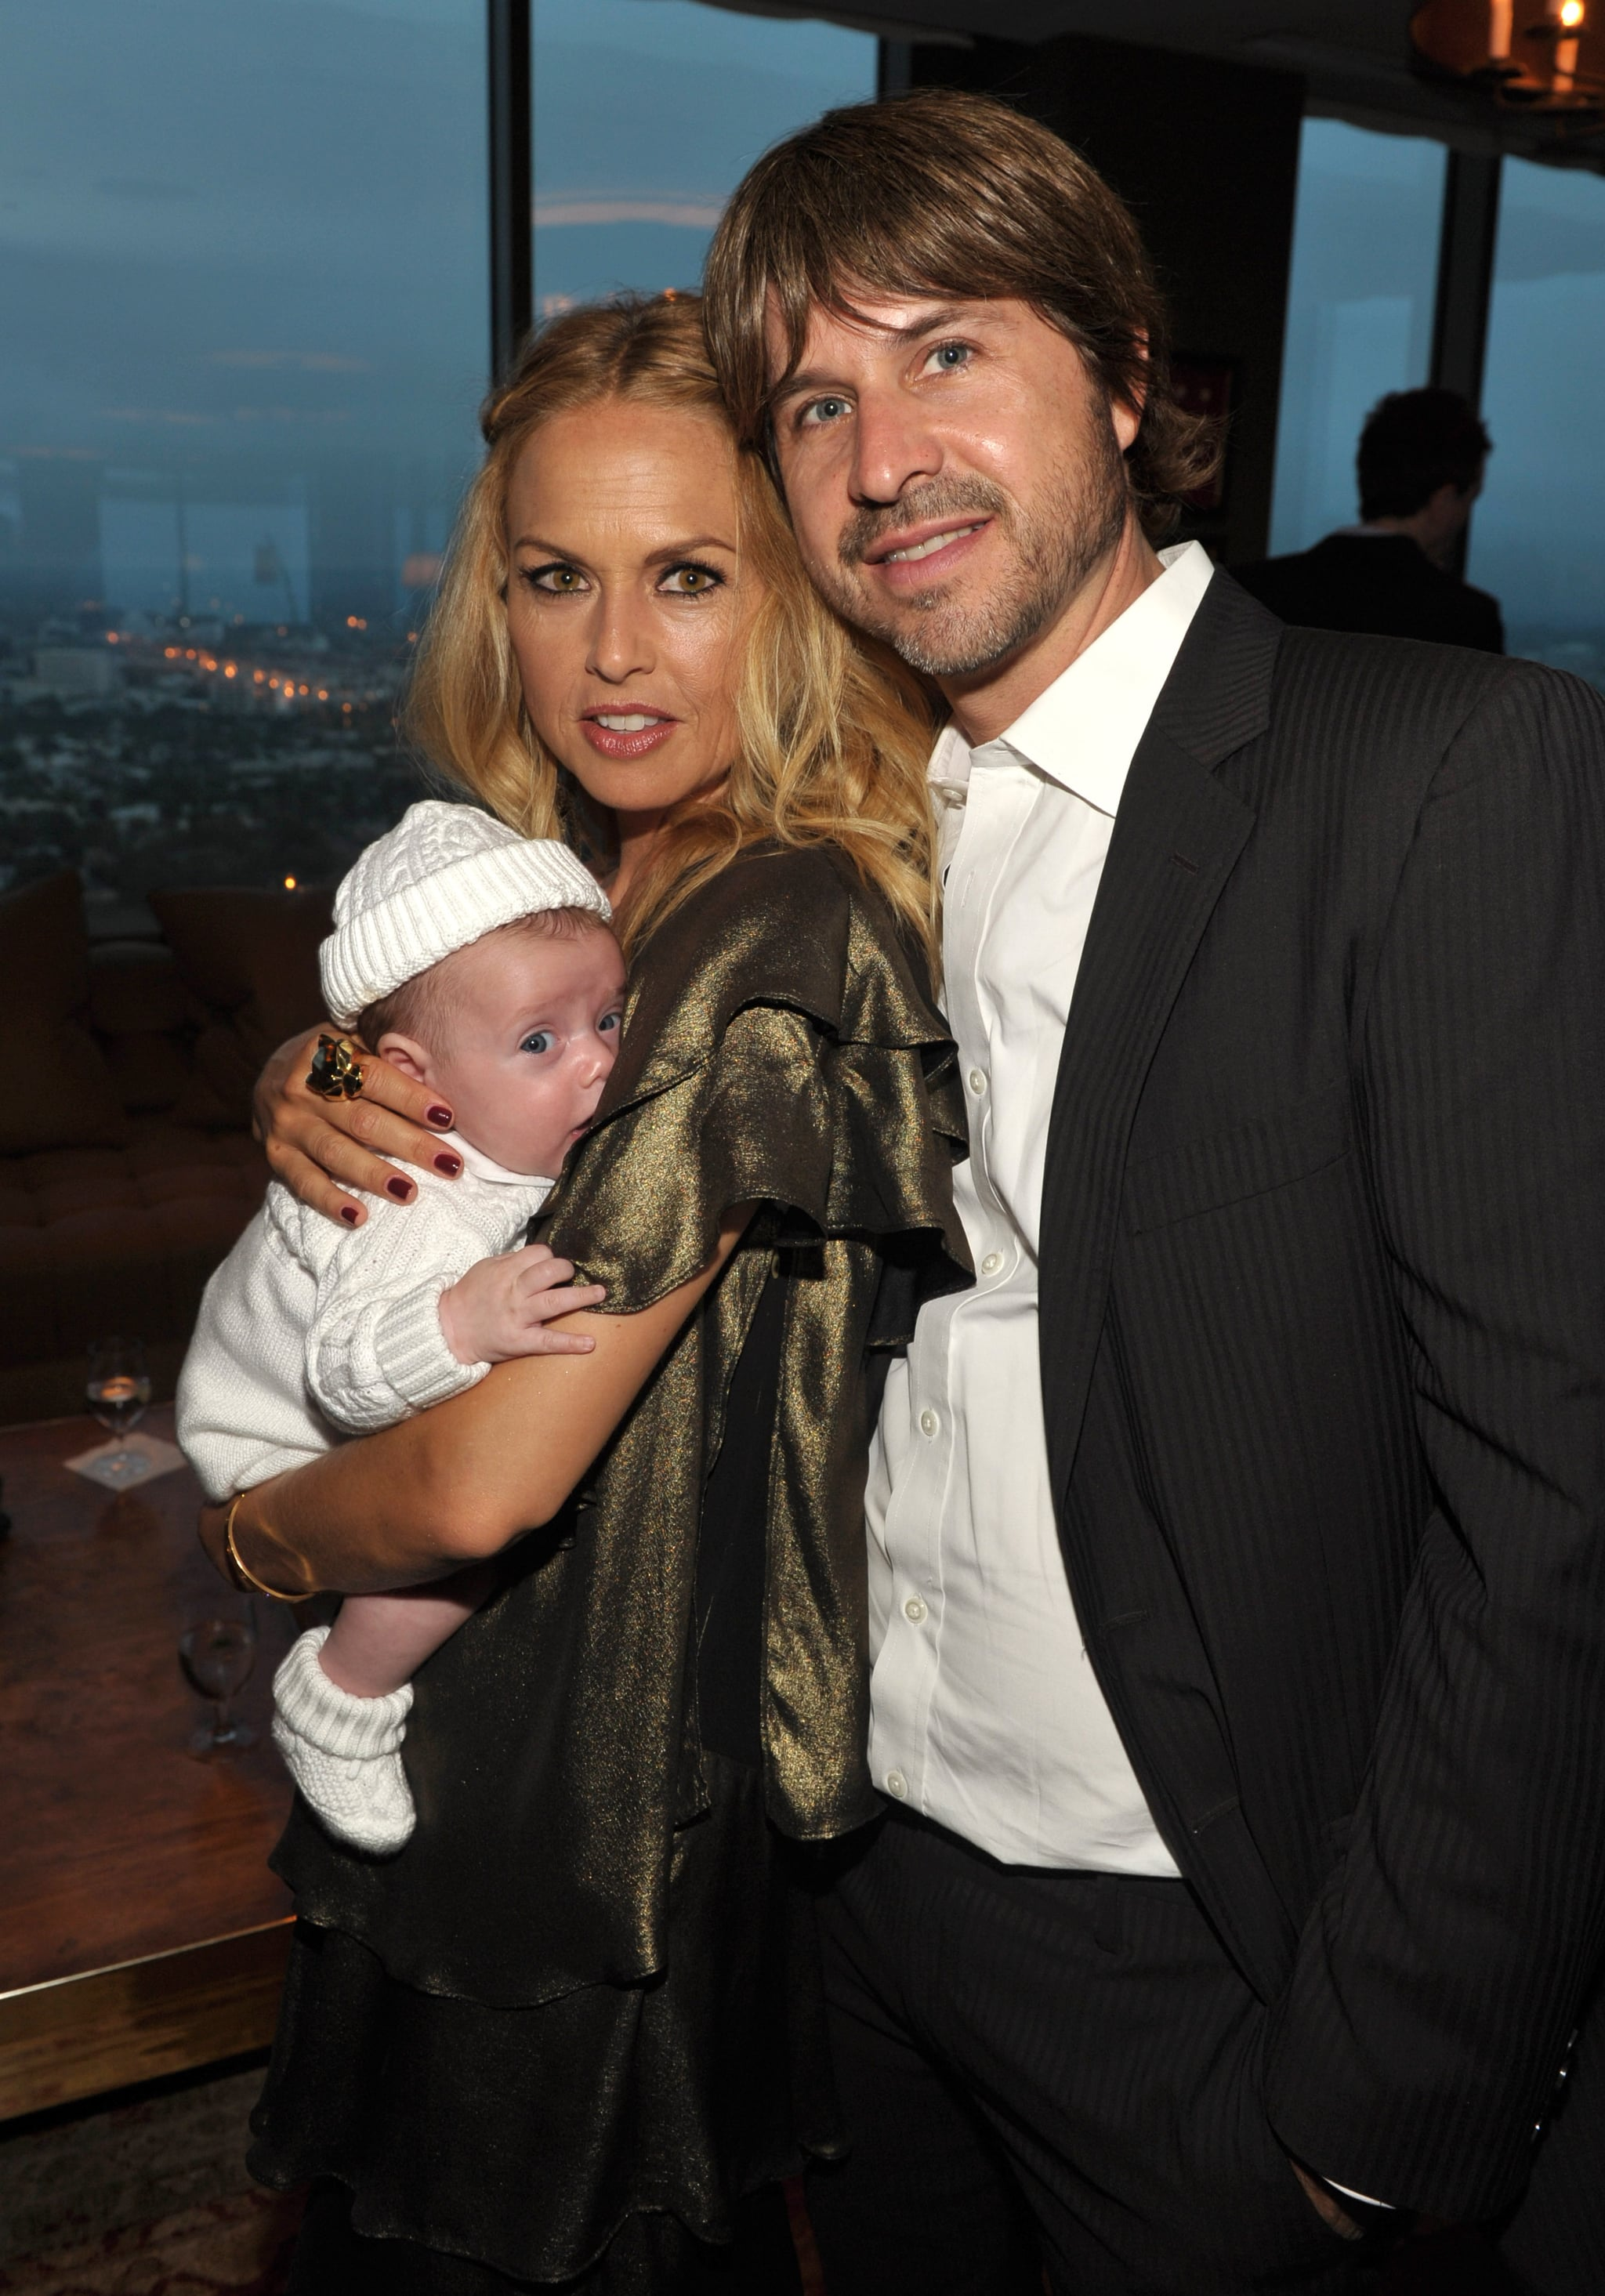 Rachel Zoe and Rodger Berman posed with their baby son Skyler Berman.